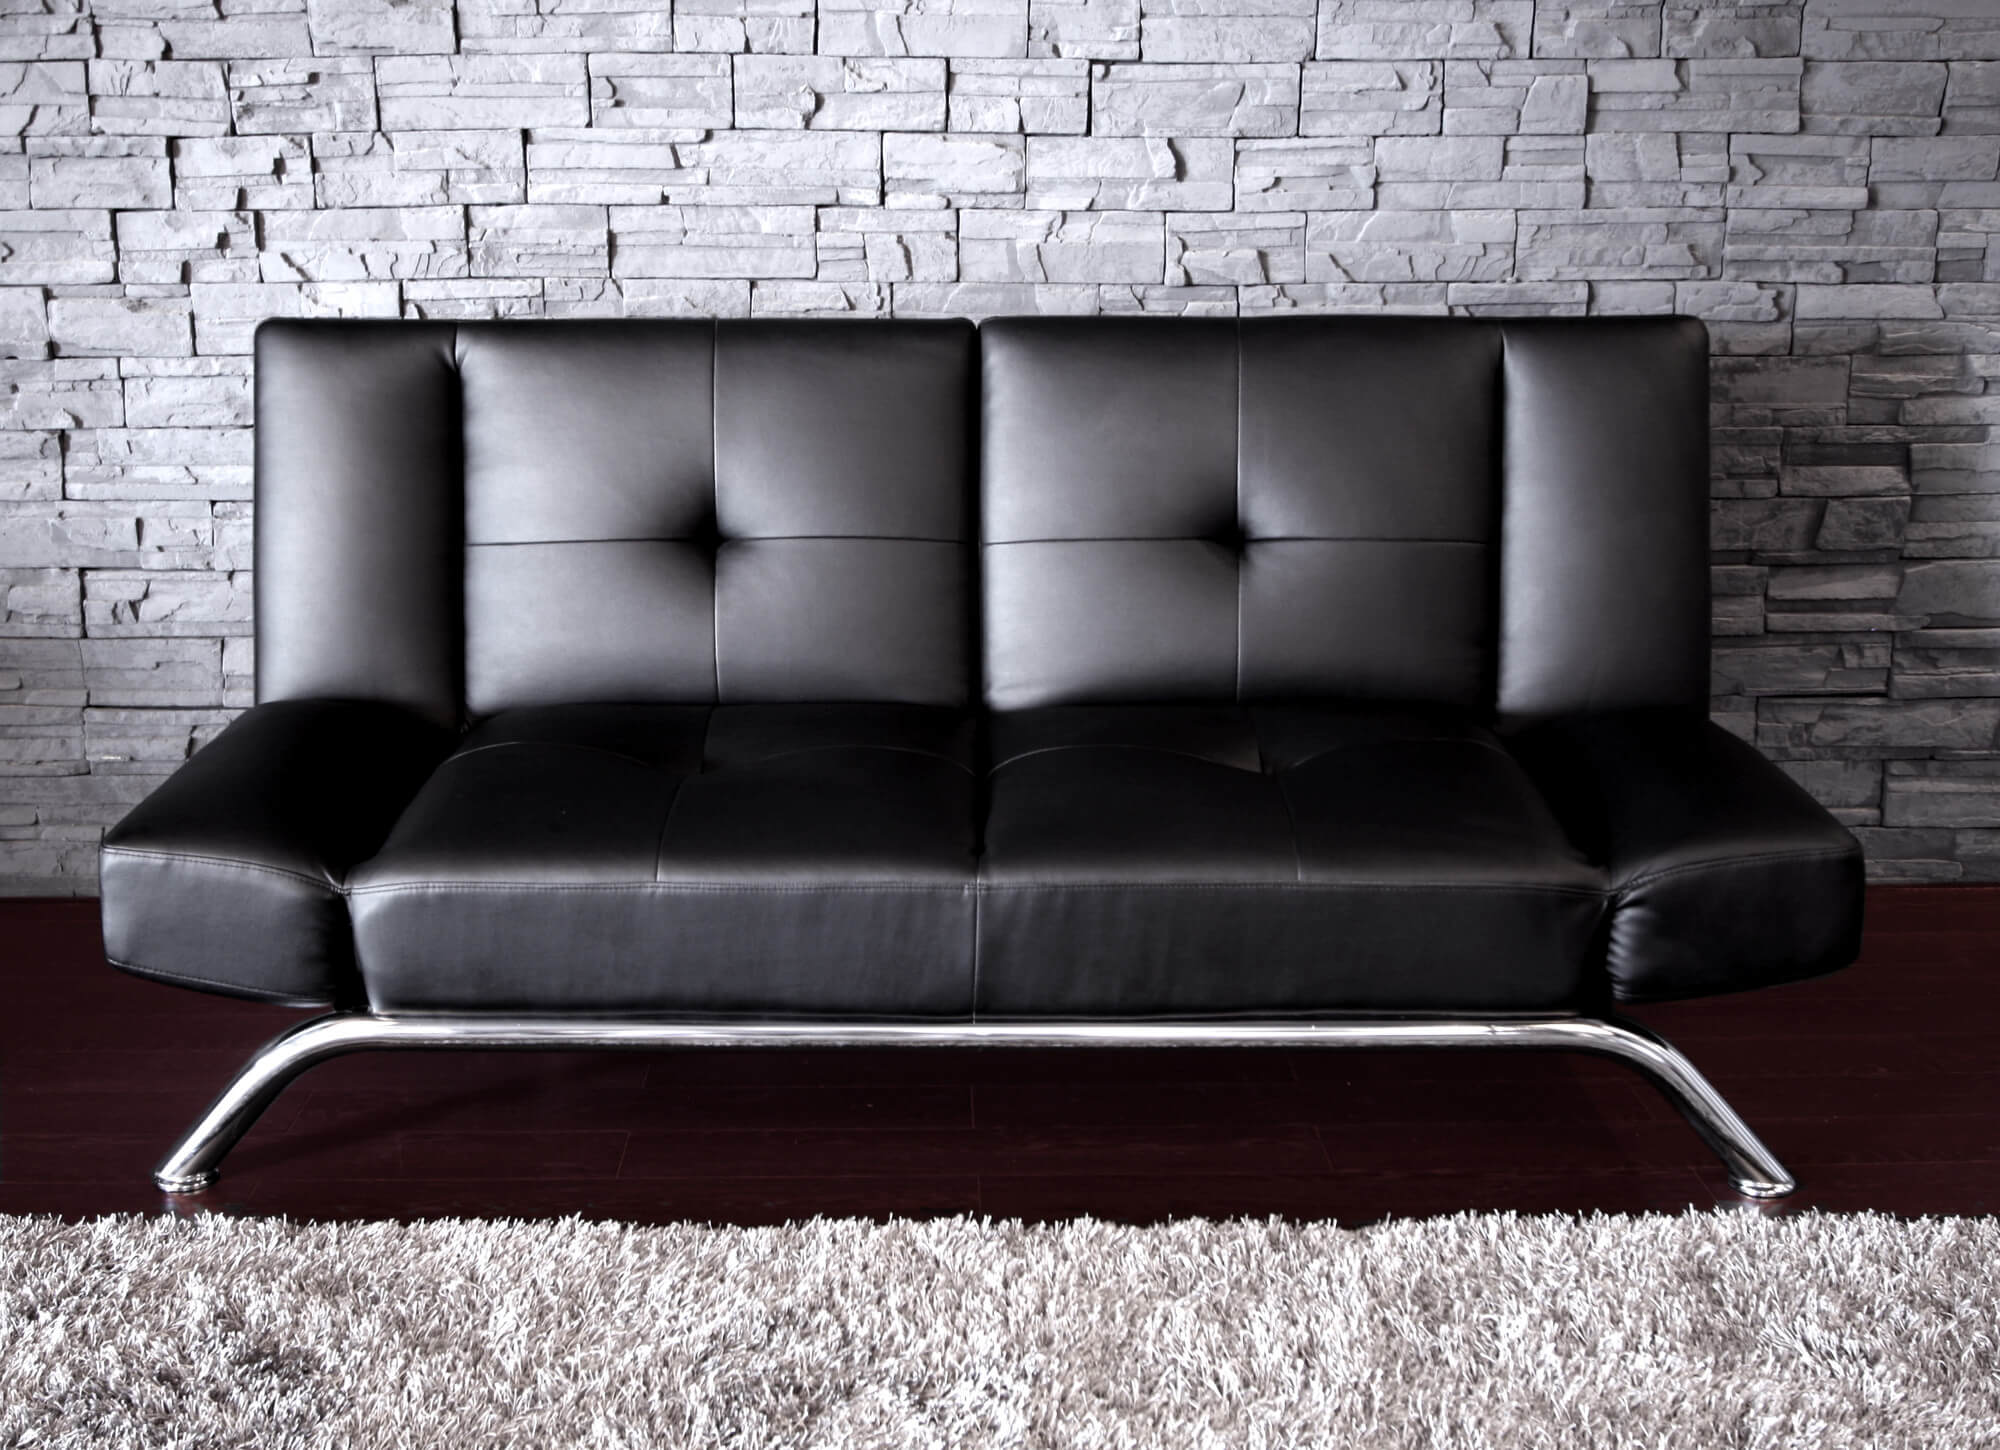 Best Places To Buy A Futon 12 Different Types Of Futons Detailed Futon Buying Guide